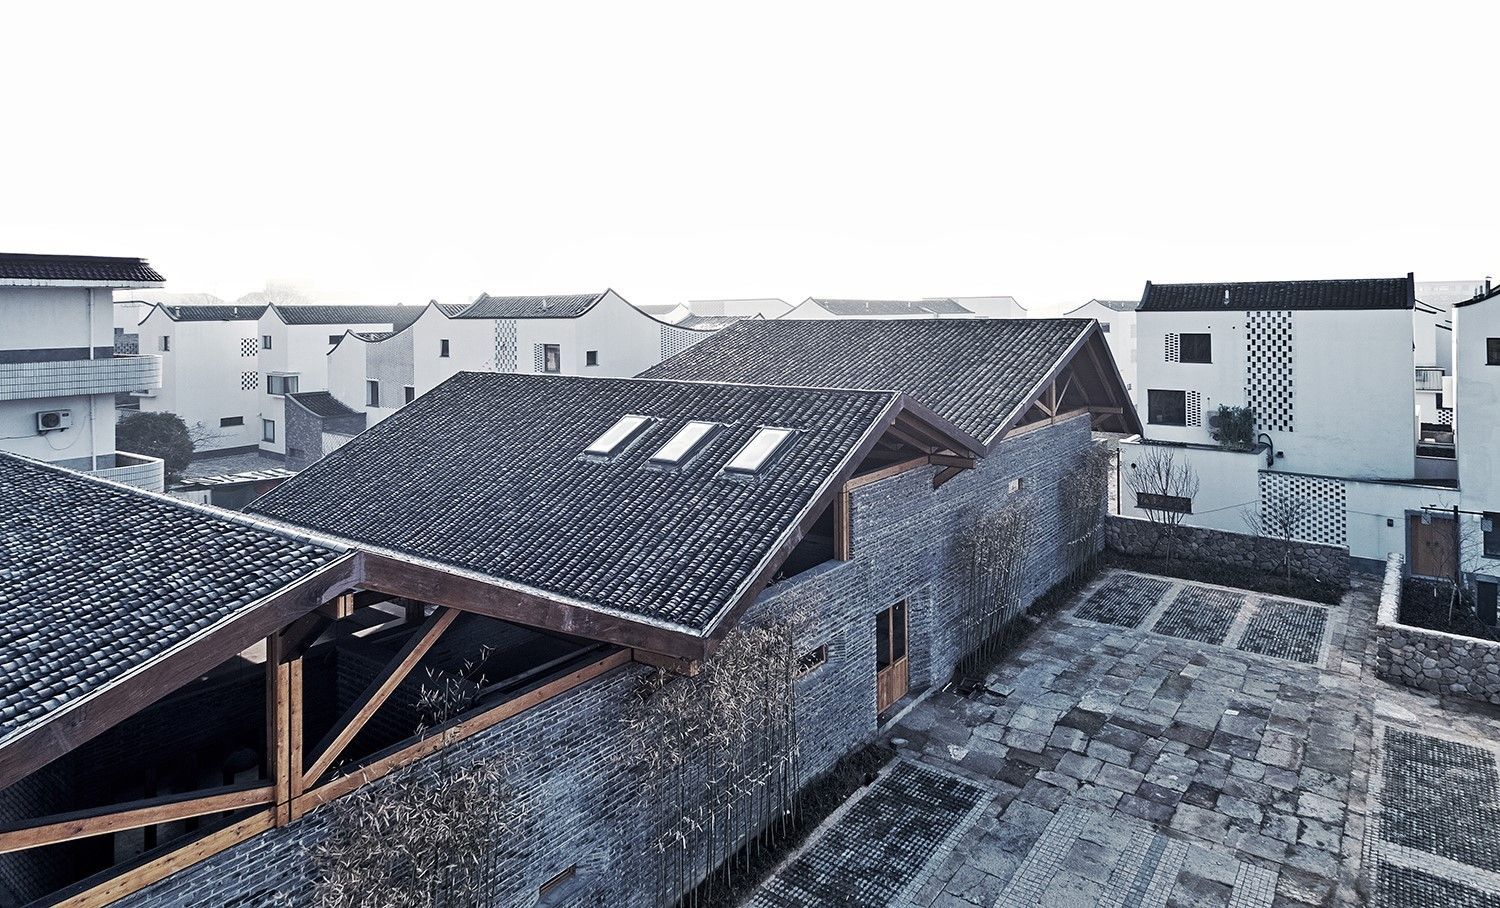 Gallery Of Dongziguan Villagers Activity Center Gad Line Studio 1 Architecture Village Studio